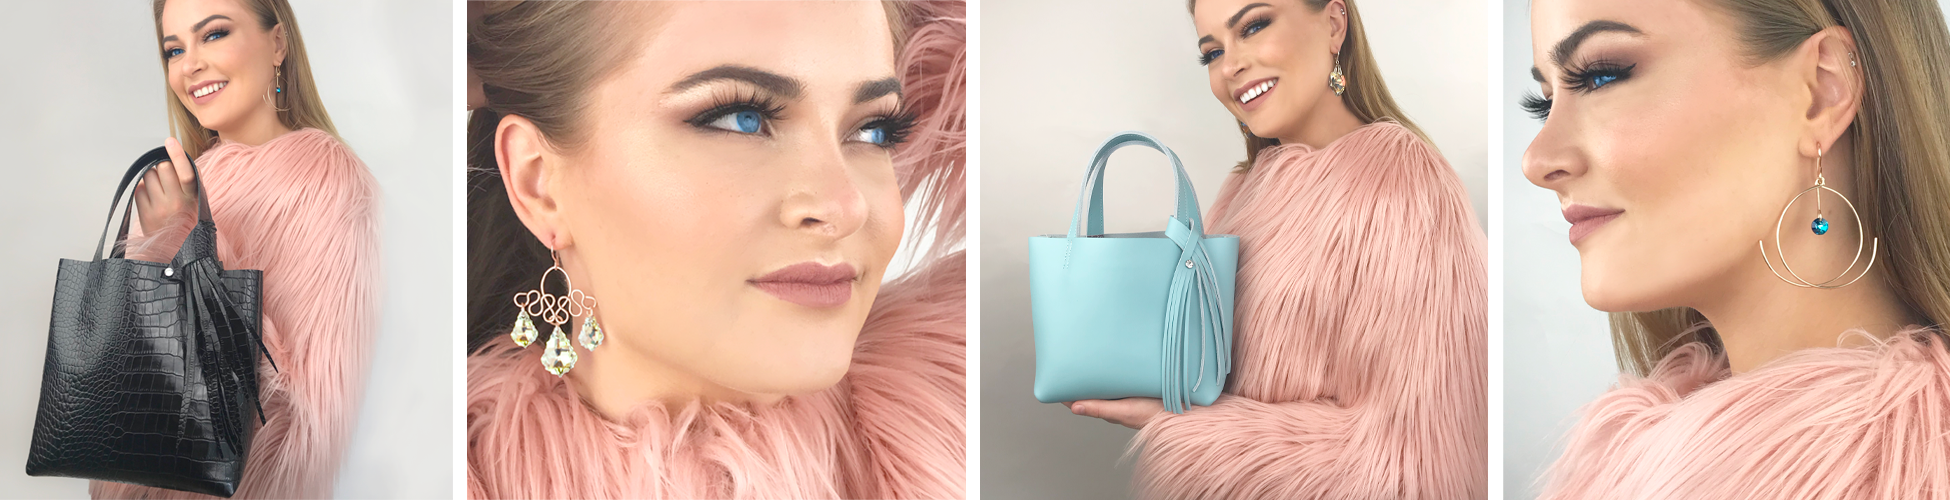 2019 Clayton Art & Wine Festival - MONOLISA HANDMADE IN CALIFORNIA  Handbags, Bag Accessories & Jewelry